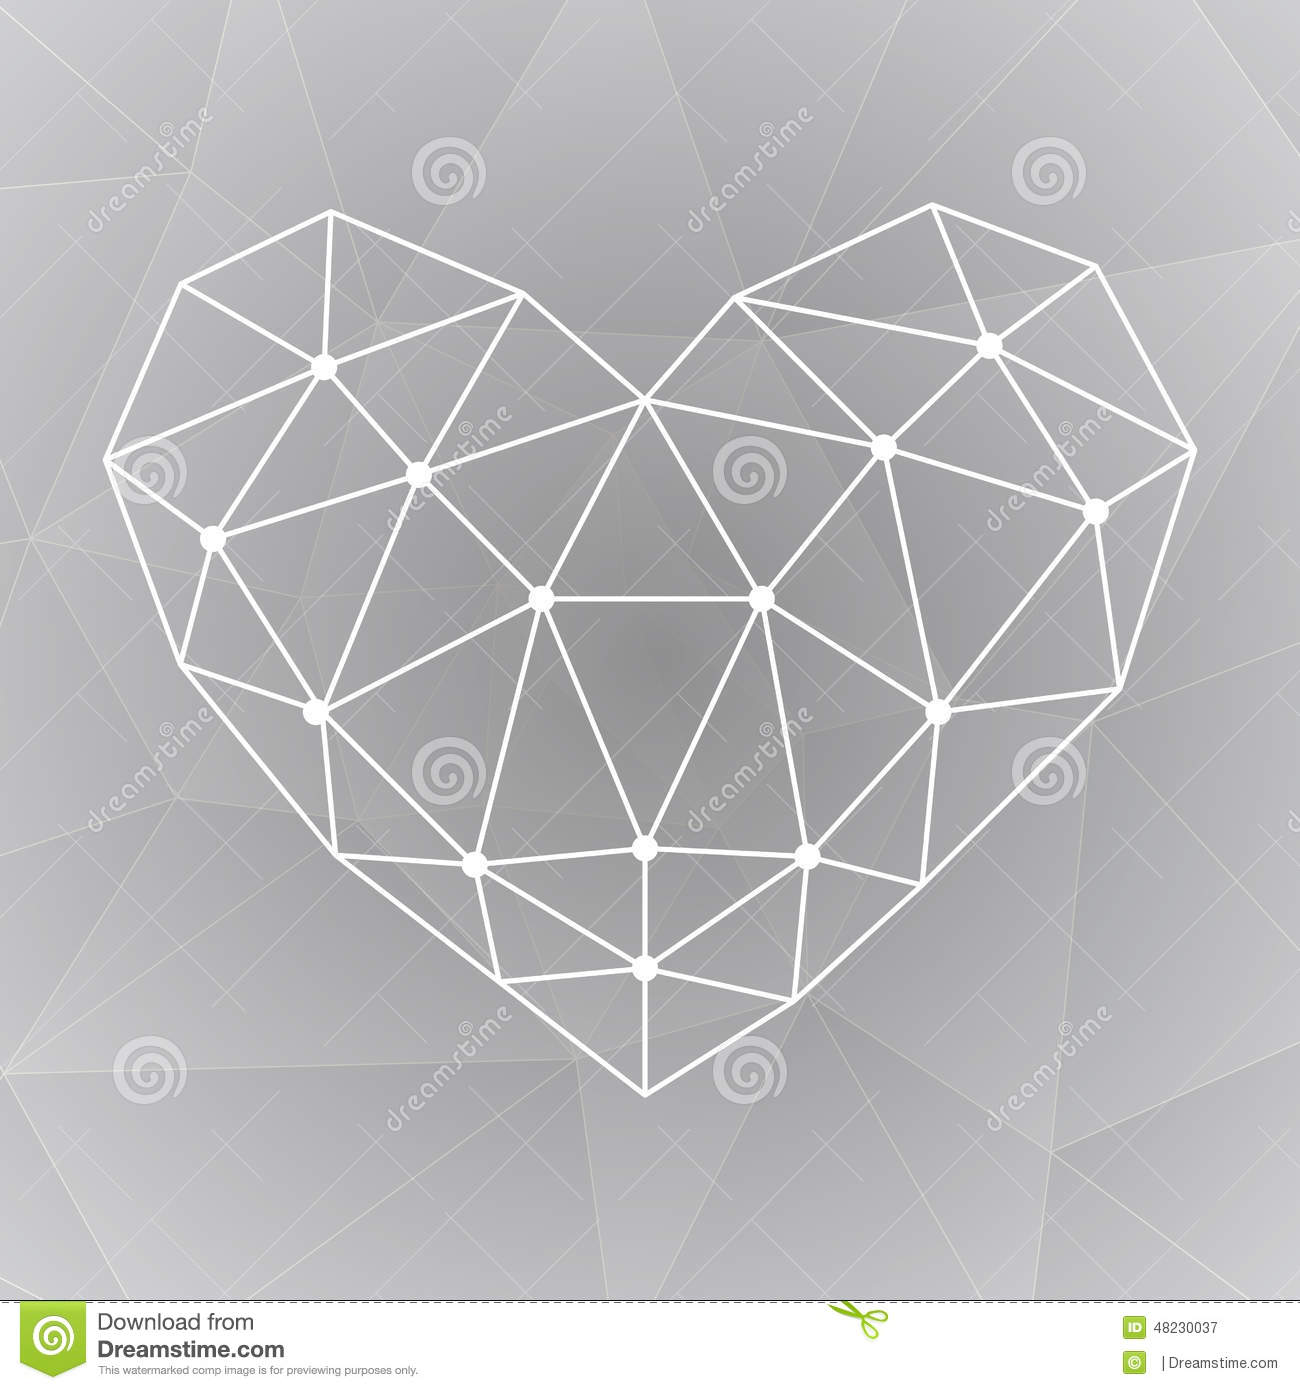 Geometric Shapes Heart Template For Valentines Day Stock